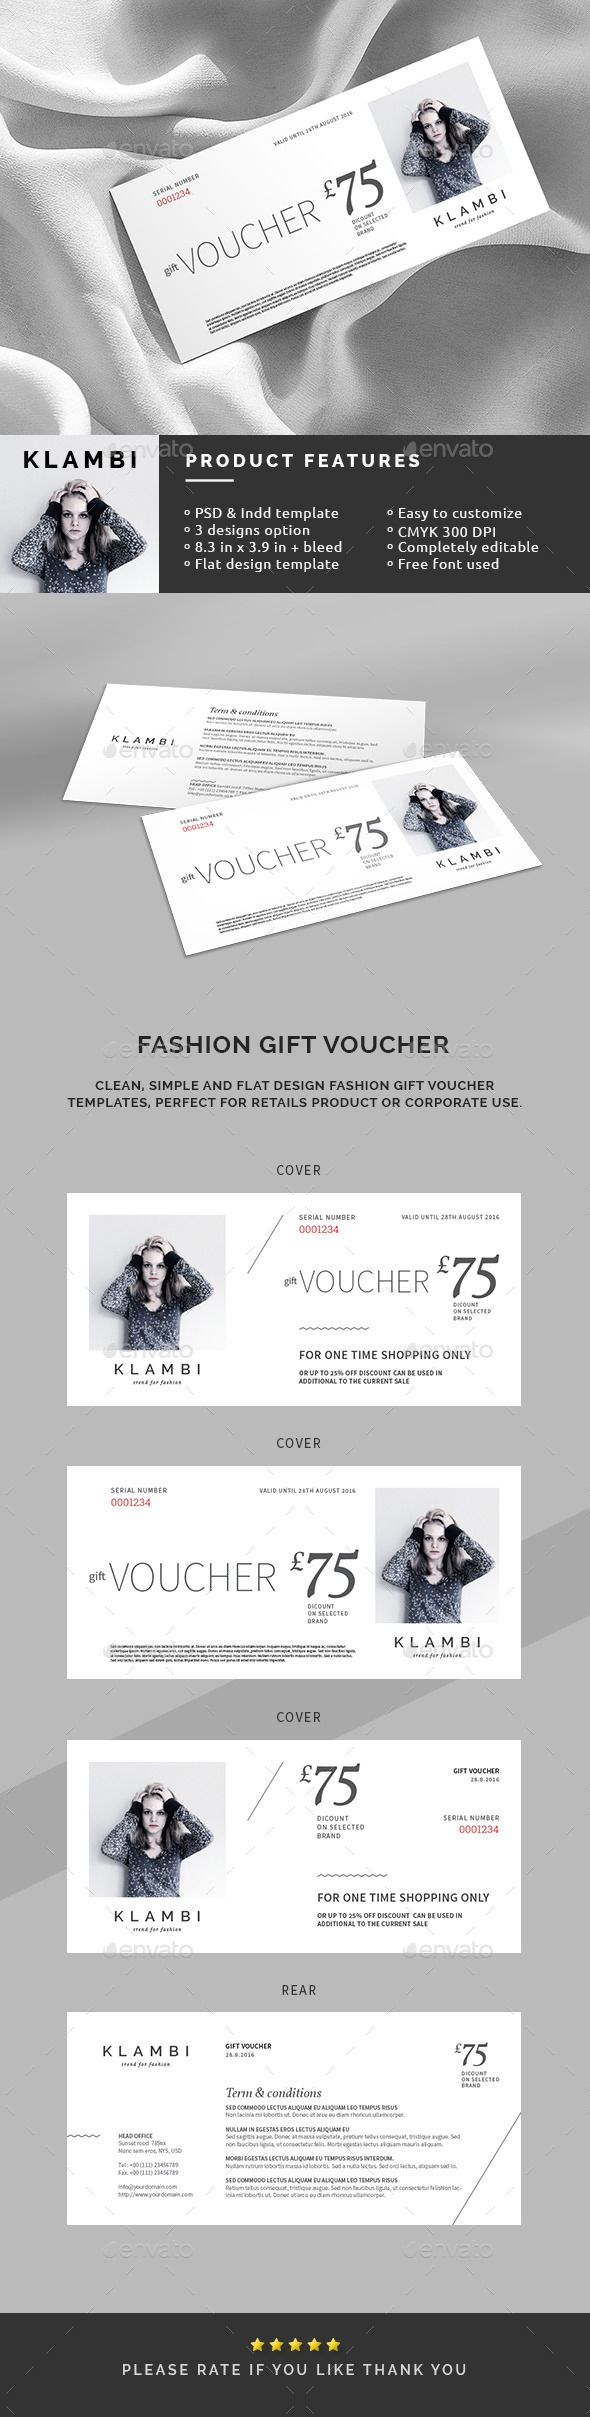 Fun Voucher Template - Arch-times.com